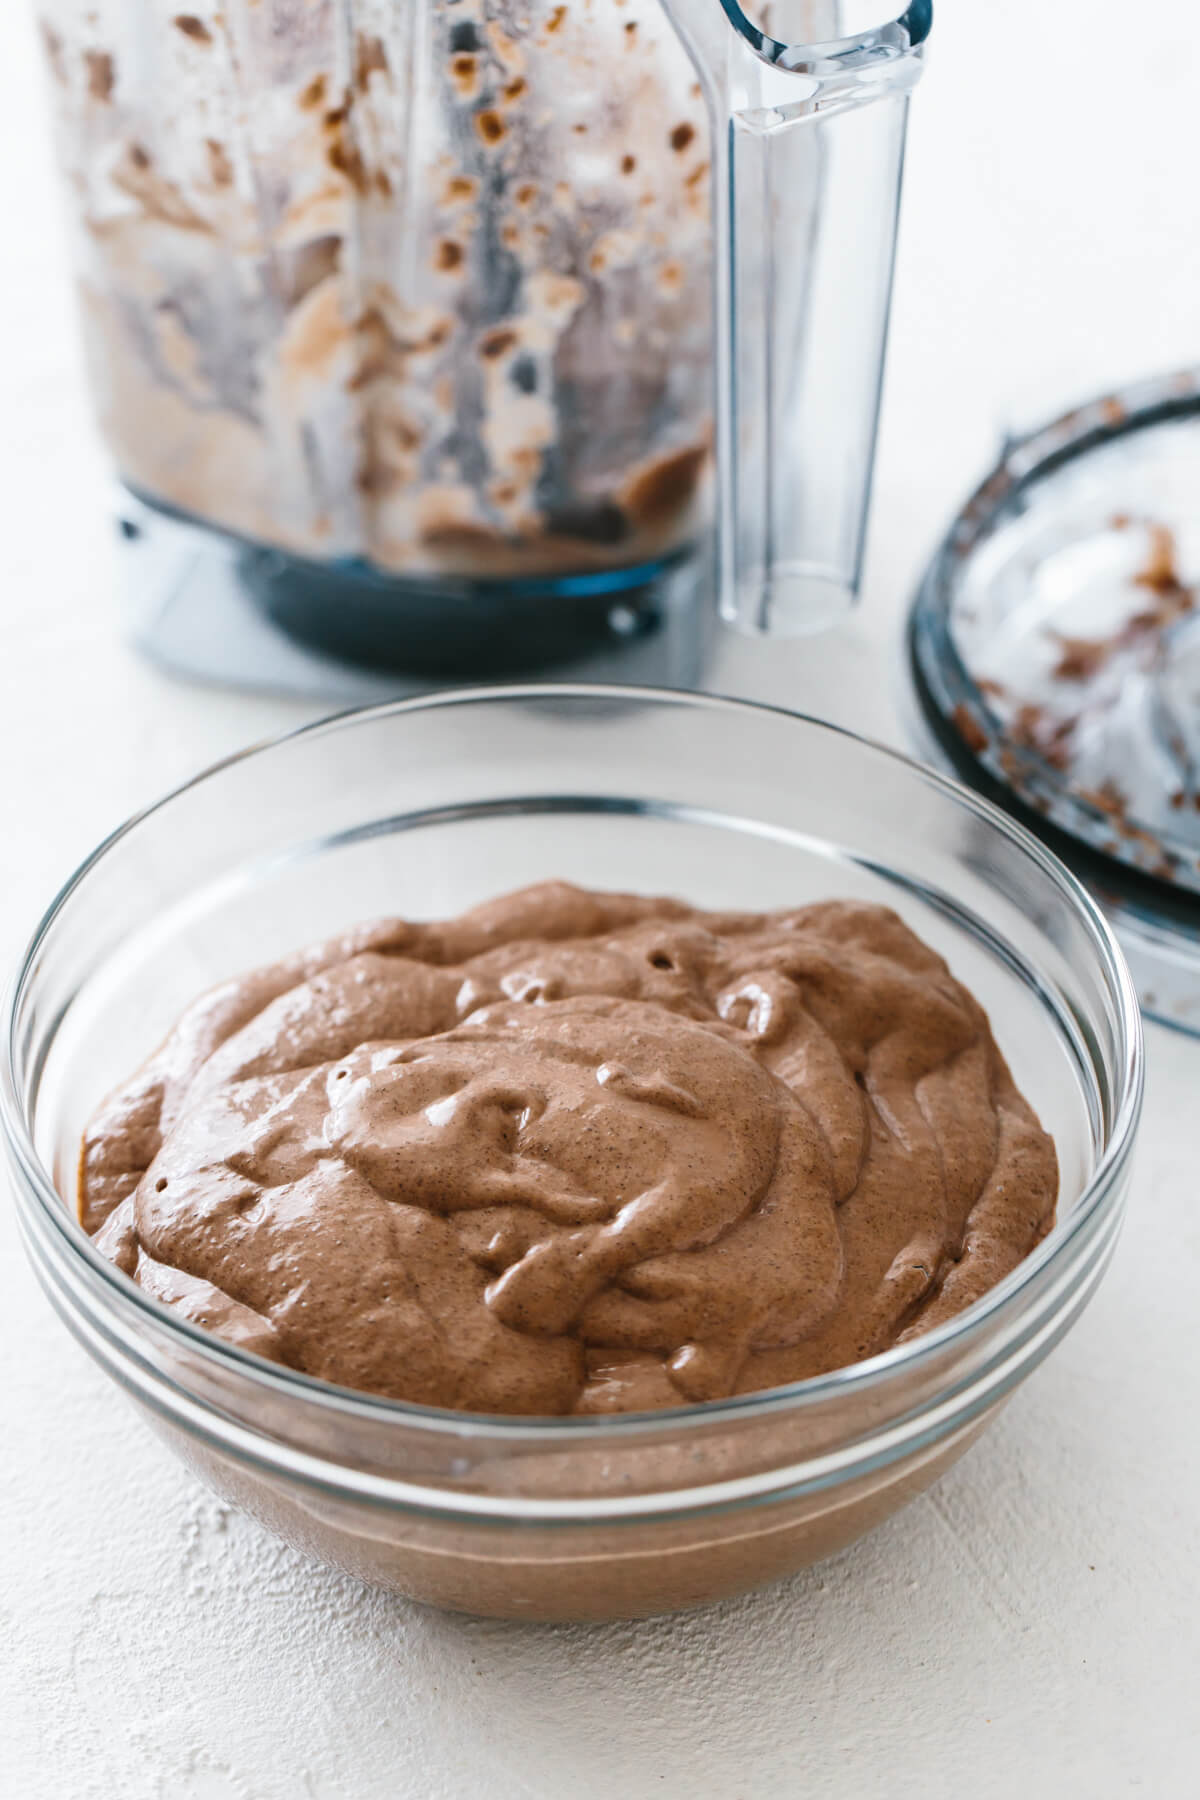 A large bowl of the chocolate chia mousse.